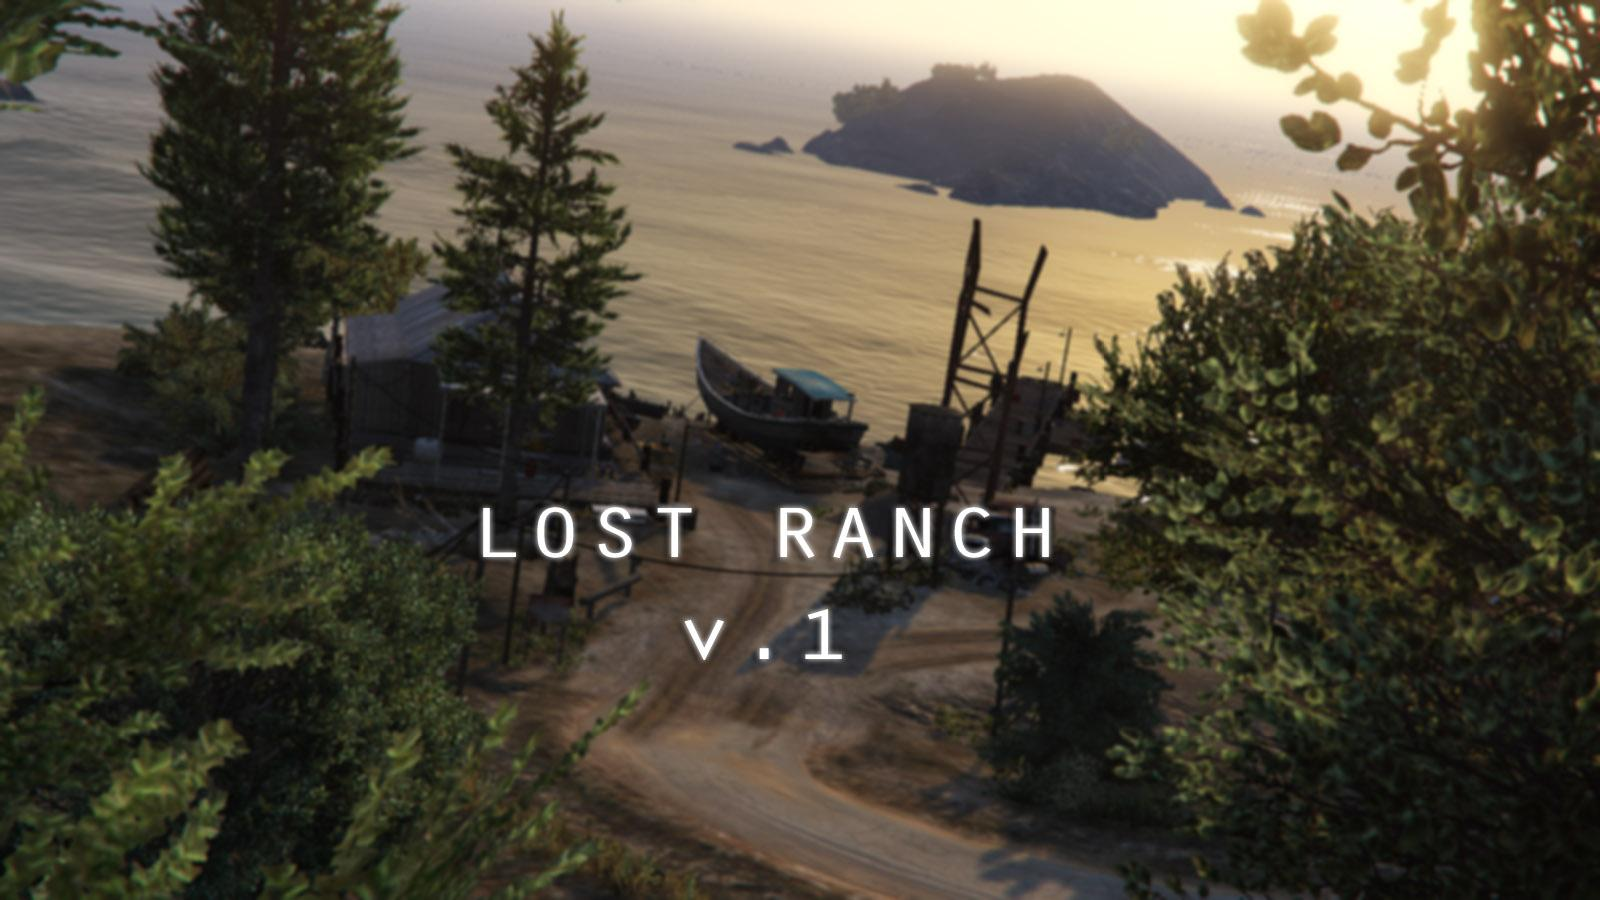 https://img.gta5-mods.com/q75/images/lost-ranch-map-editor-xml-v-1/80bf2b-GTA5%202018-03-01%2000-17-29-61.jpg